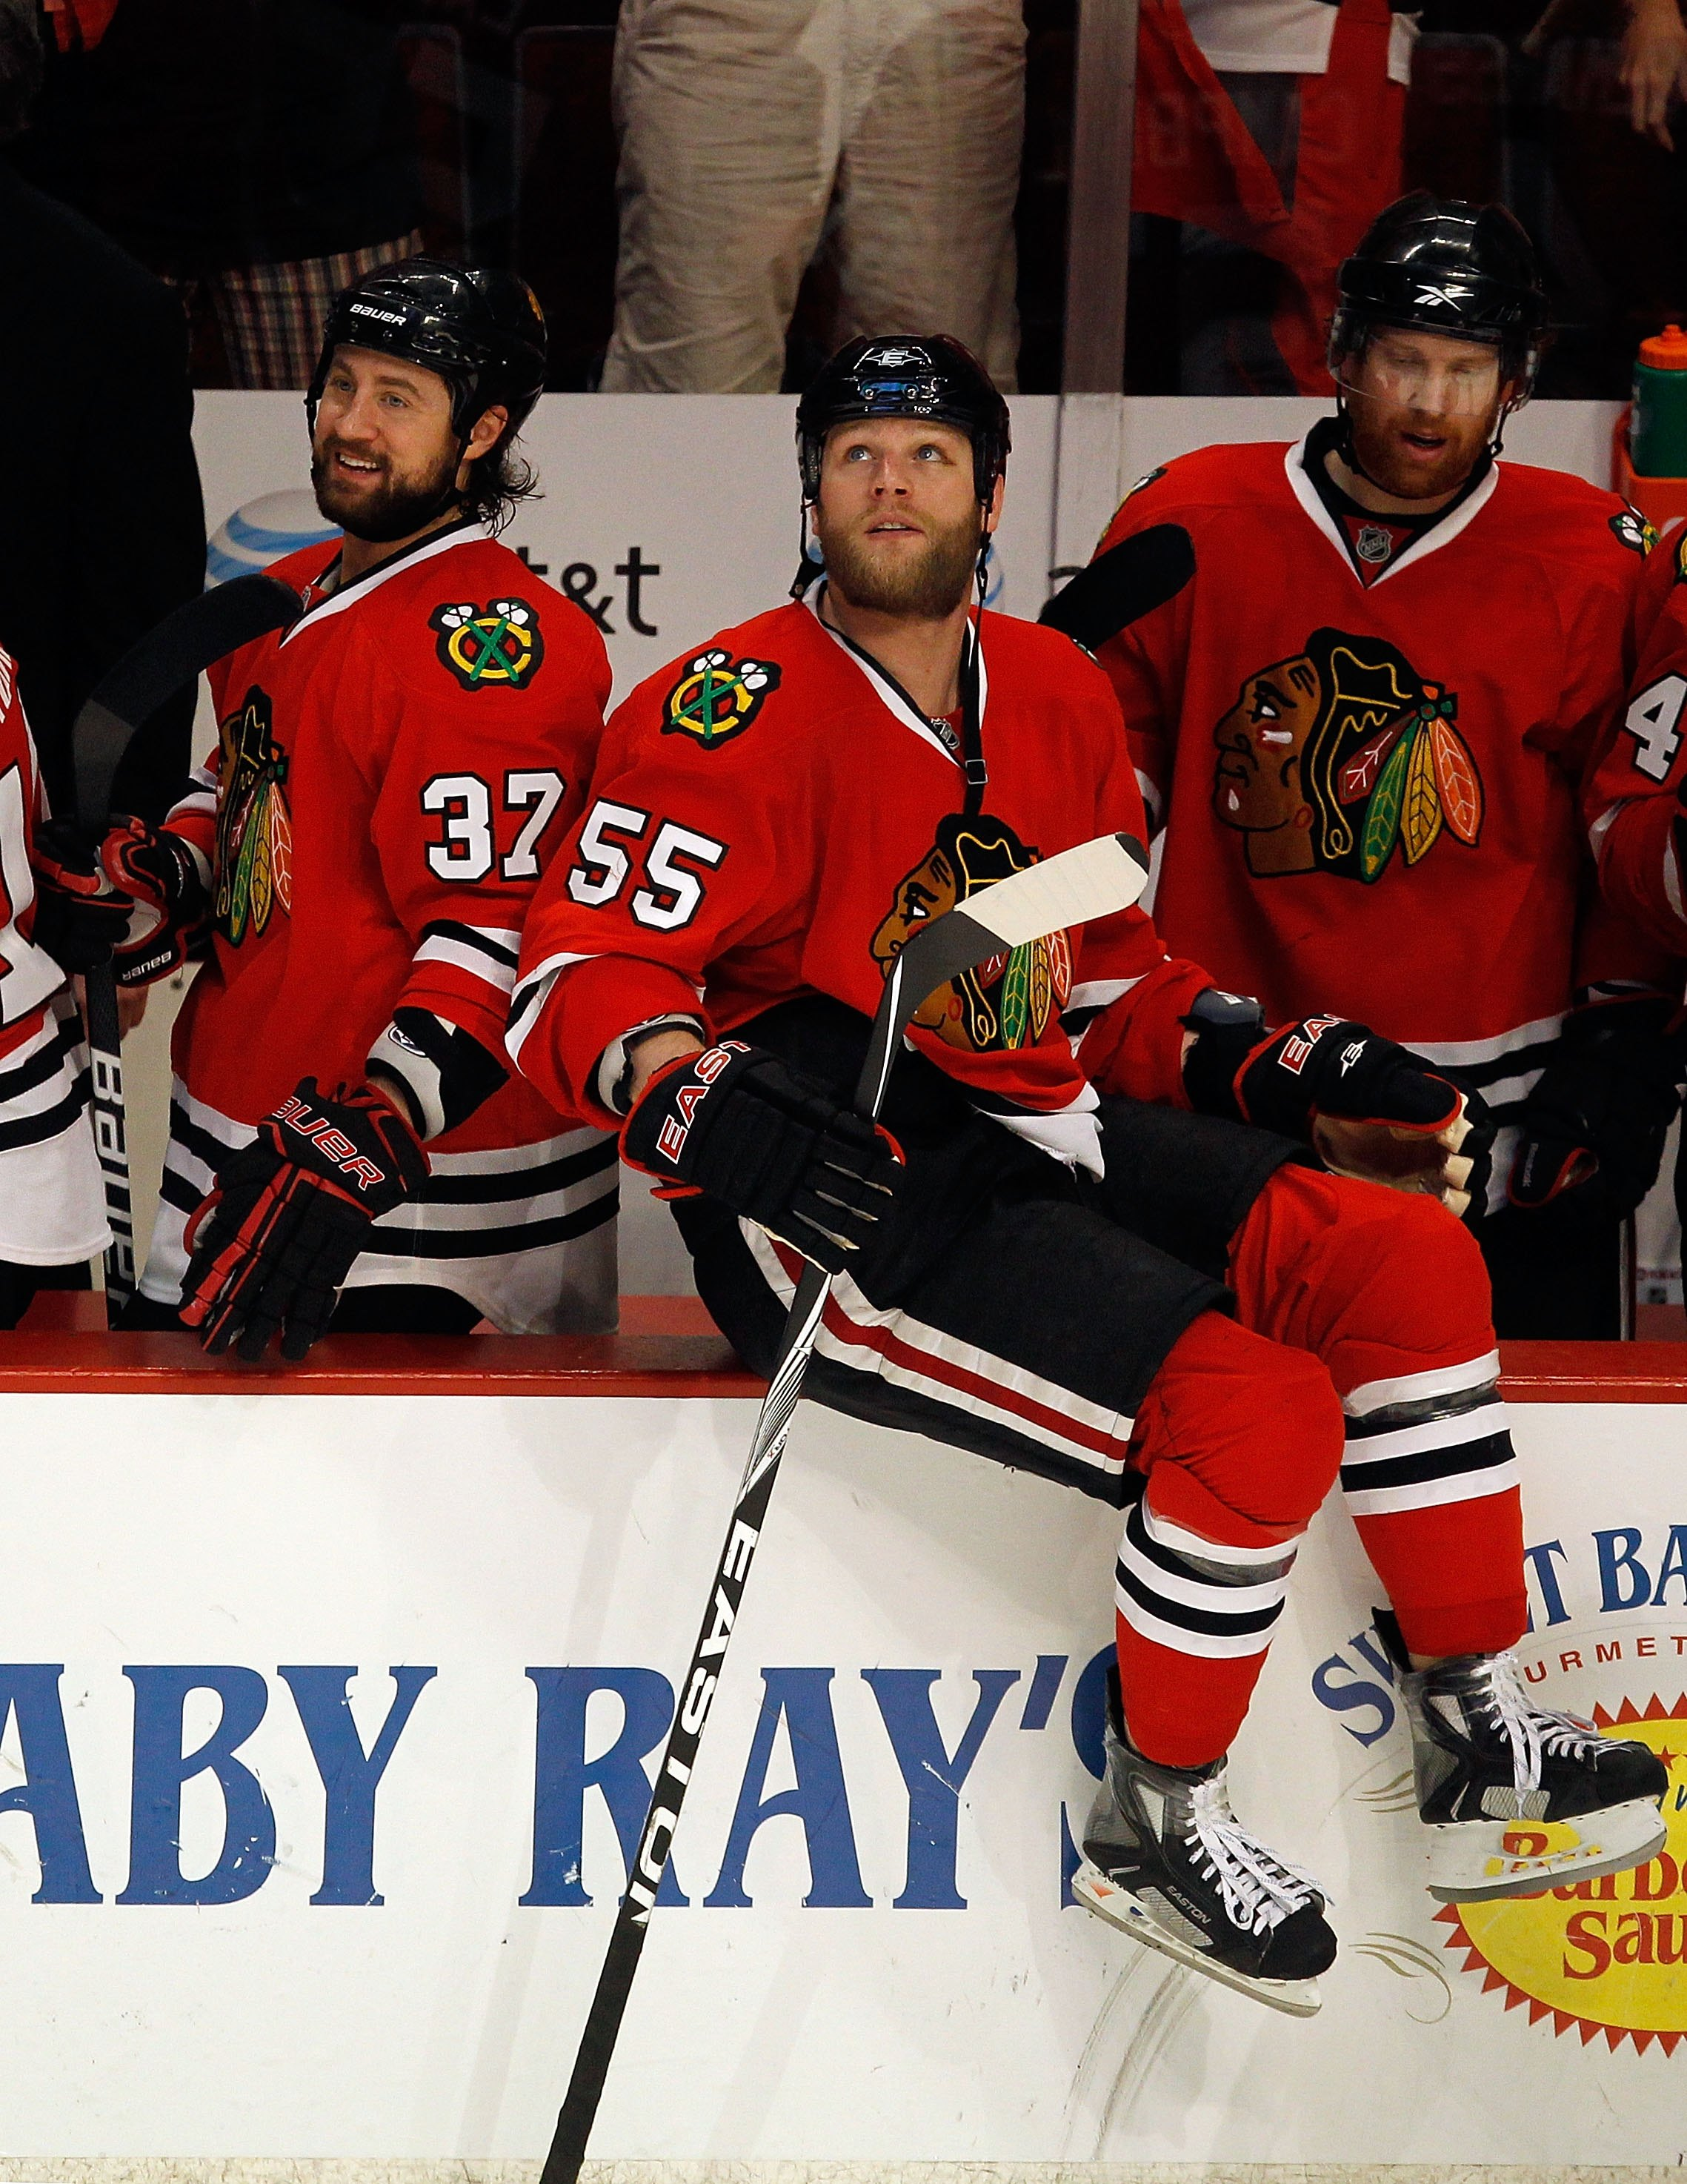 CHICAGO - MAY 23:  Adam Burish #37 and Ben Eager #55 of the Chicago Blackhawks look on from the bench while taking on the San Jose Sharks in Game Four of the Western Conference Finals during the 2010 NHL Stanley Cup Playoffs at the United Center on May 23